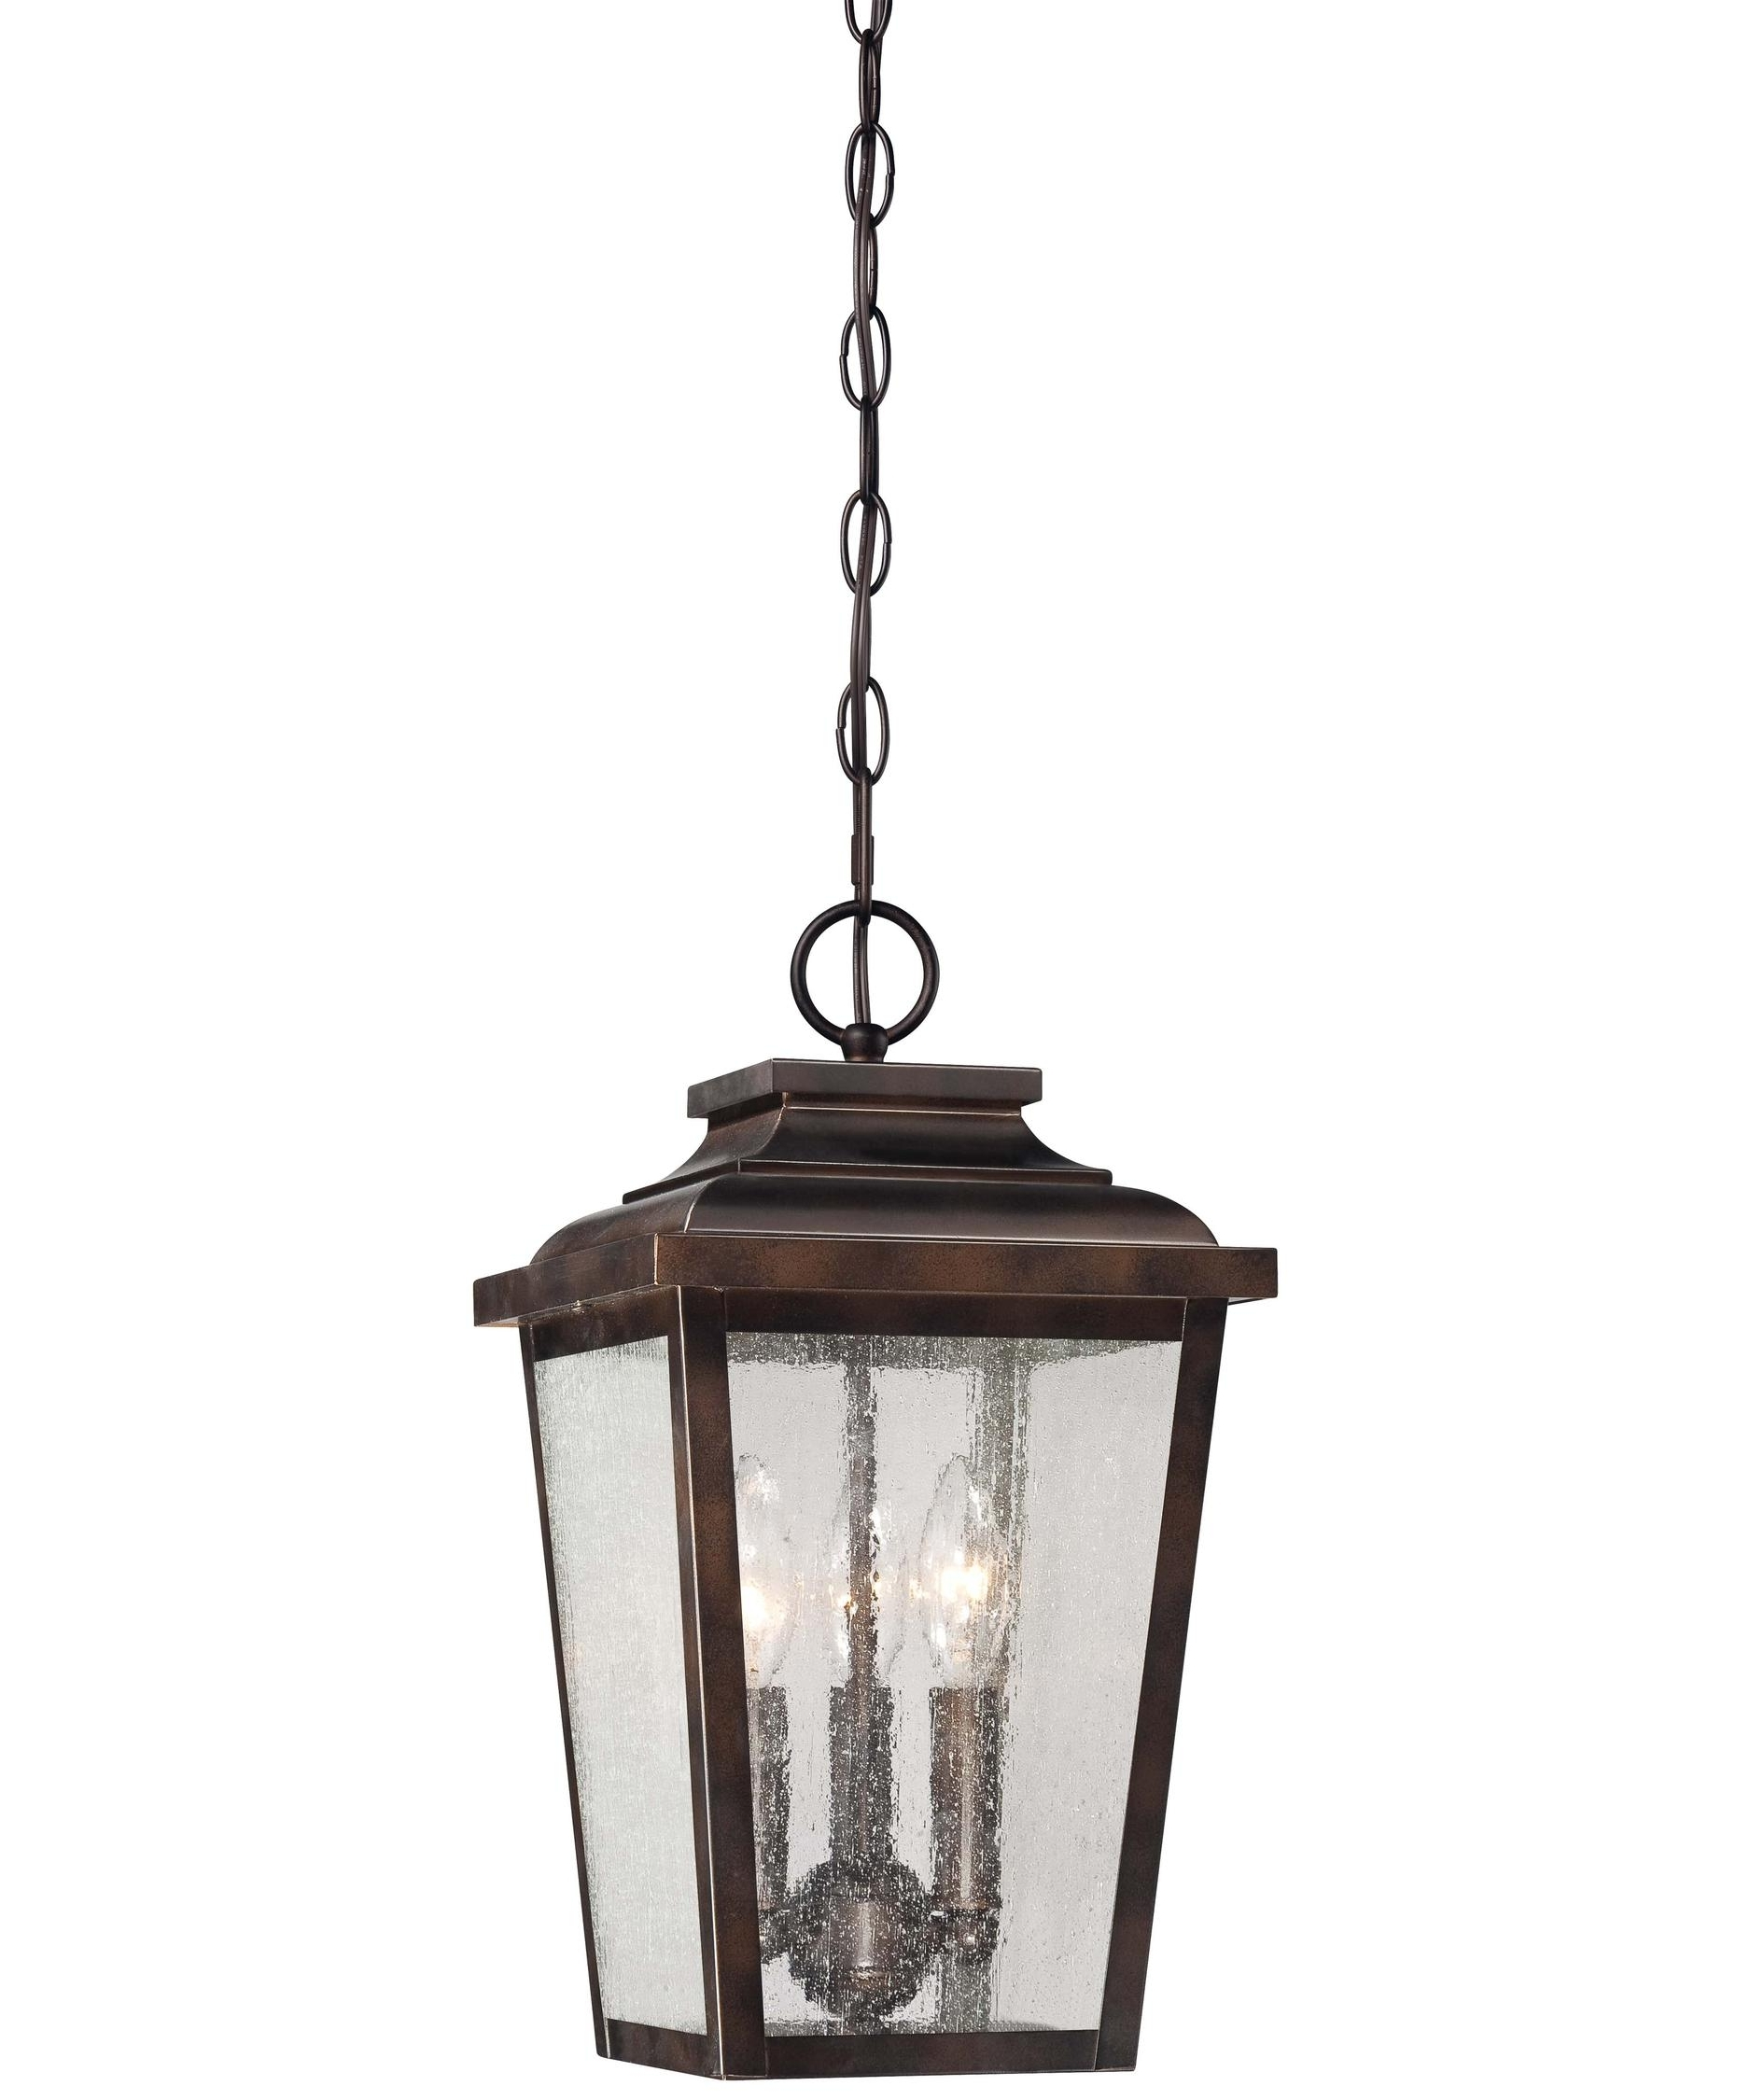 Outdoor Hanging Lanterns From Australia Throughout Latest Marvelous Outdoor Pendant Lighting In House Decor Inspiration (View 14 of 20)